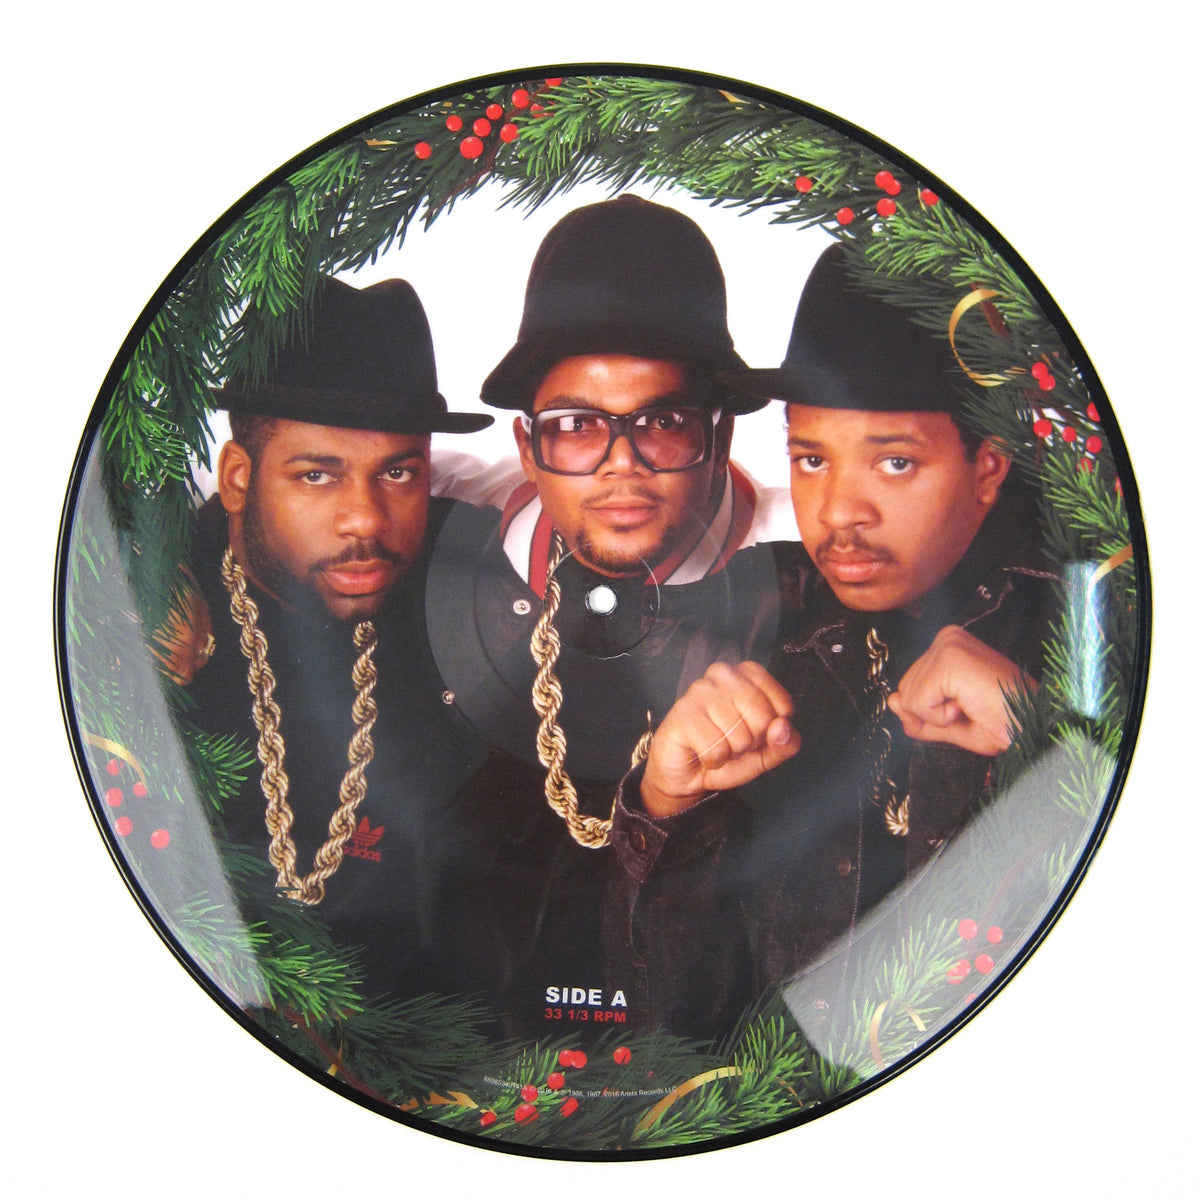 Run DMC: Christmas In Hollis Pic Disc Vinyl LP (Record Store Day)